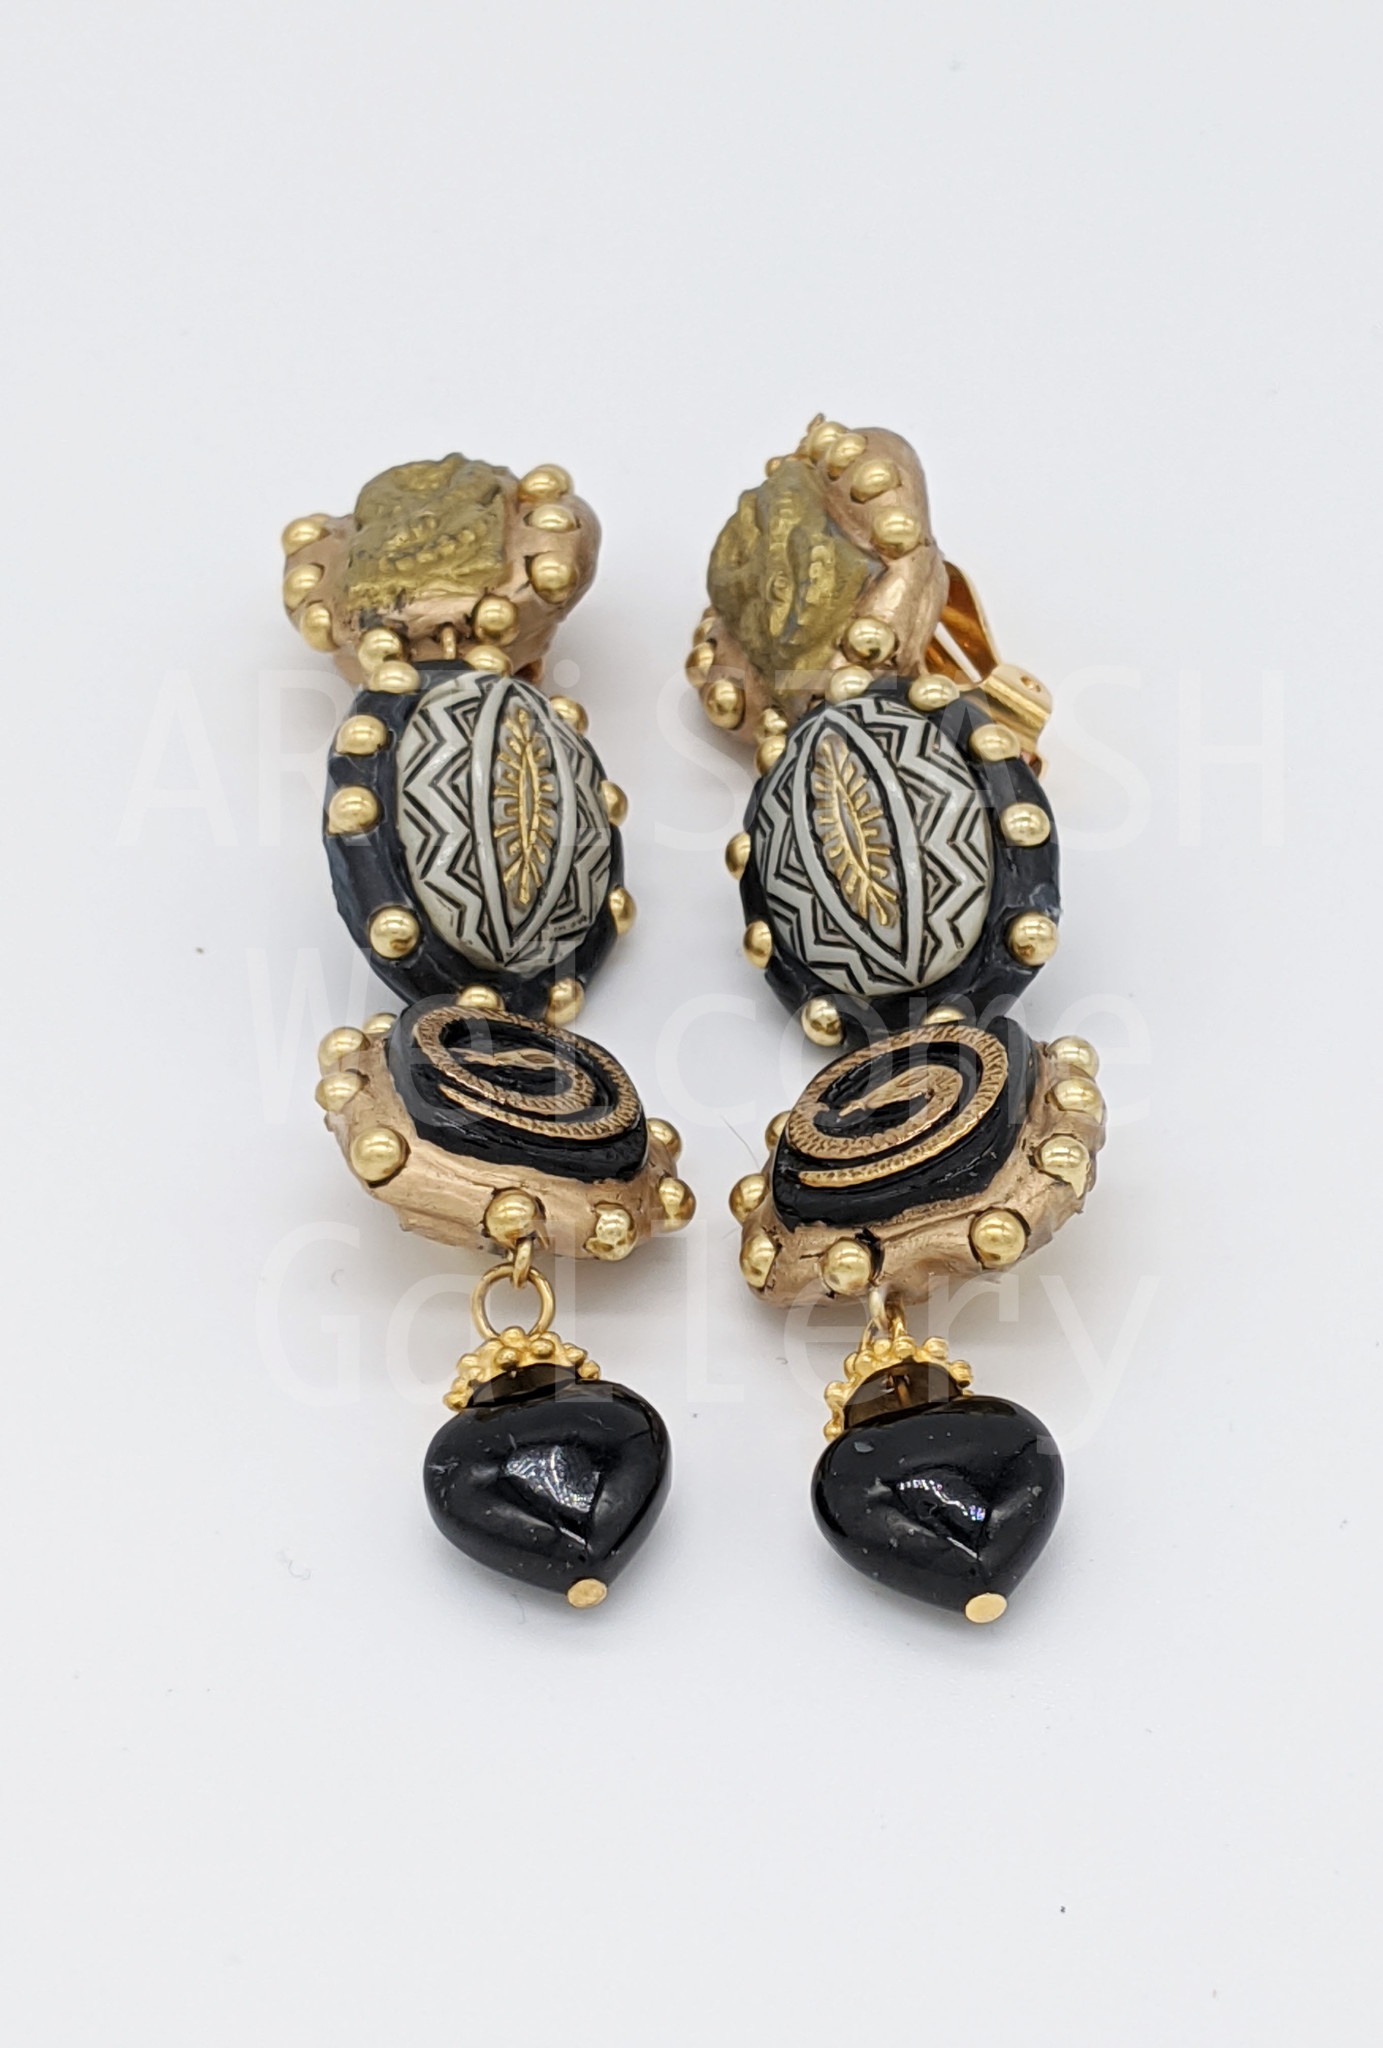 Richard Minadeo Coiled Snake Earrings by Richard Minadeo